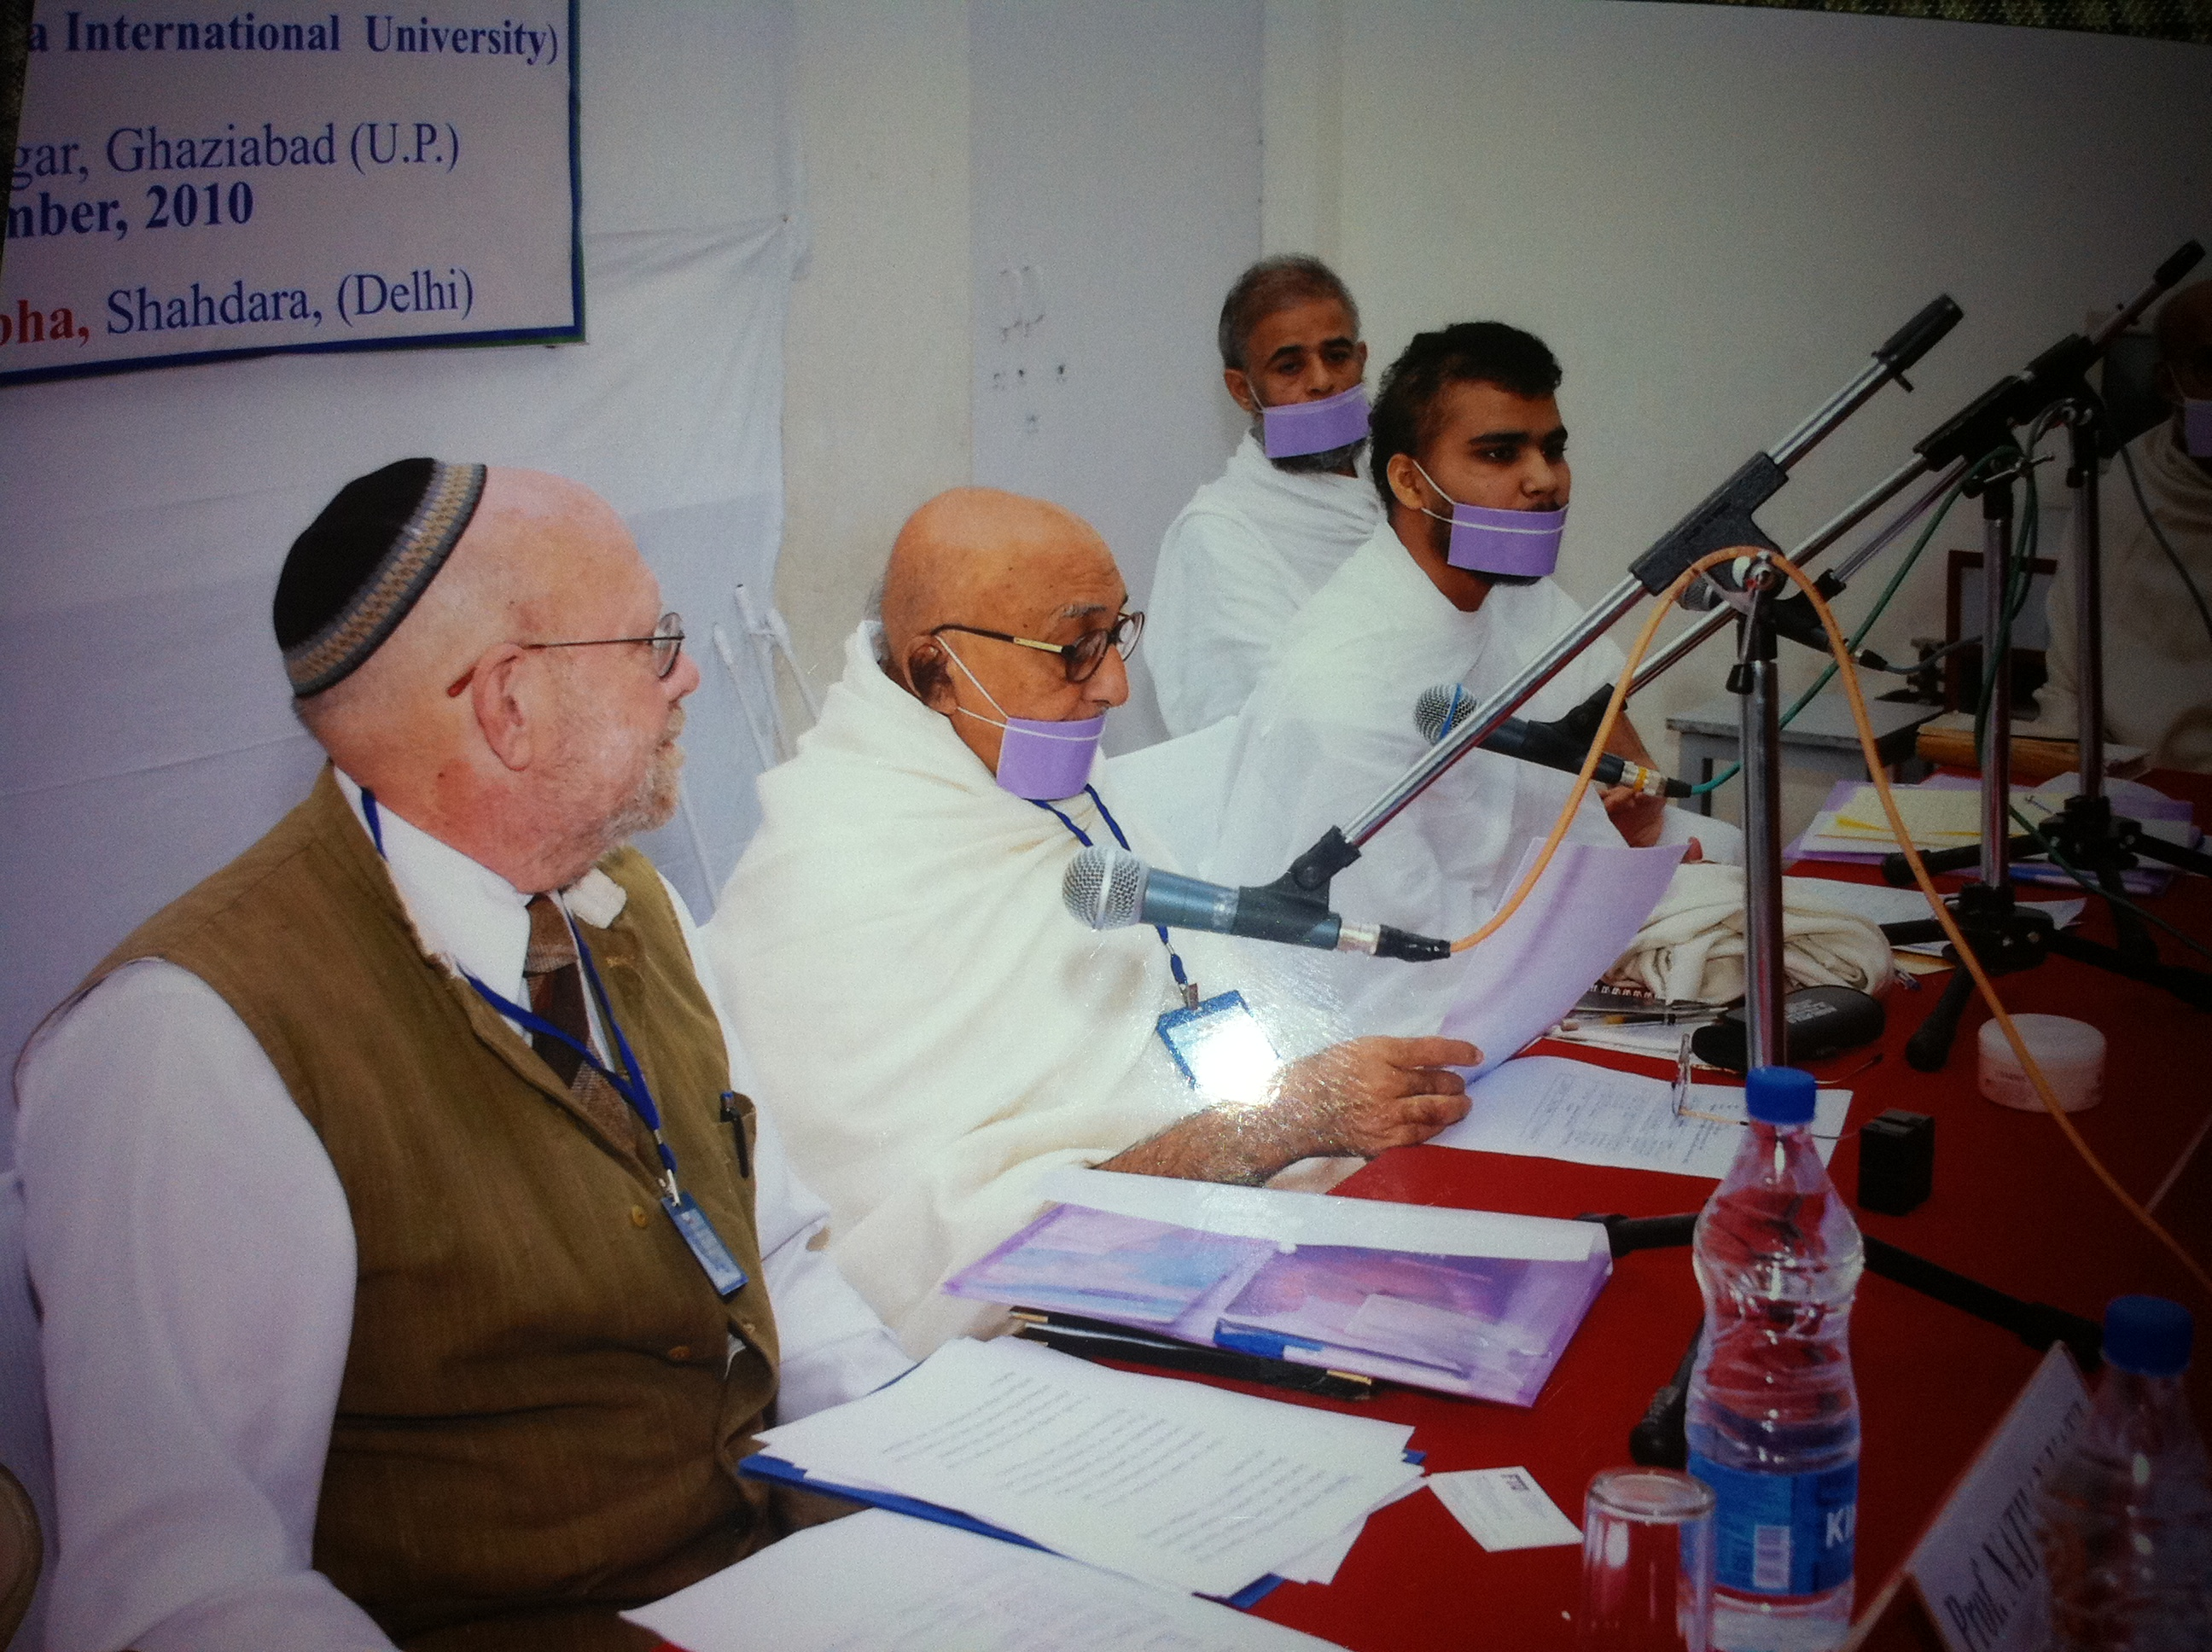 http://www.herenow4u.net/fileadmin/v3media/pics/organisations/Jain_Education_and_Research_Foundation/2010-11_Dr._Nathan_Katz_Visits_India/2010-11-25_Delhi_-_Seminar_and_Meeting_with_Prof._Muni_Mahendra_Kumar03.JPG